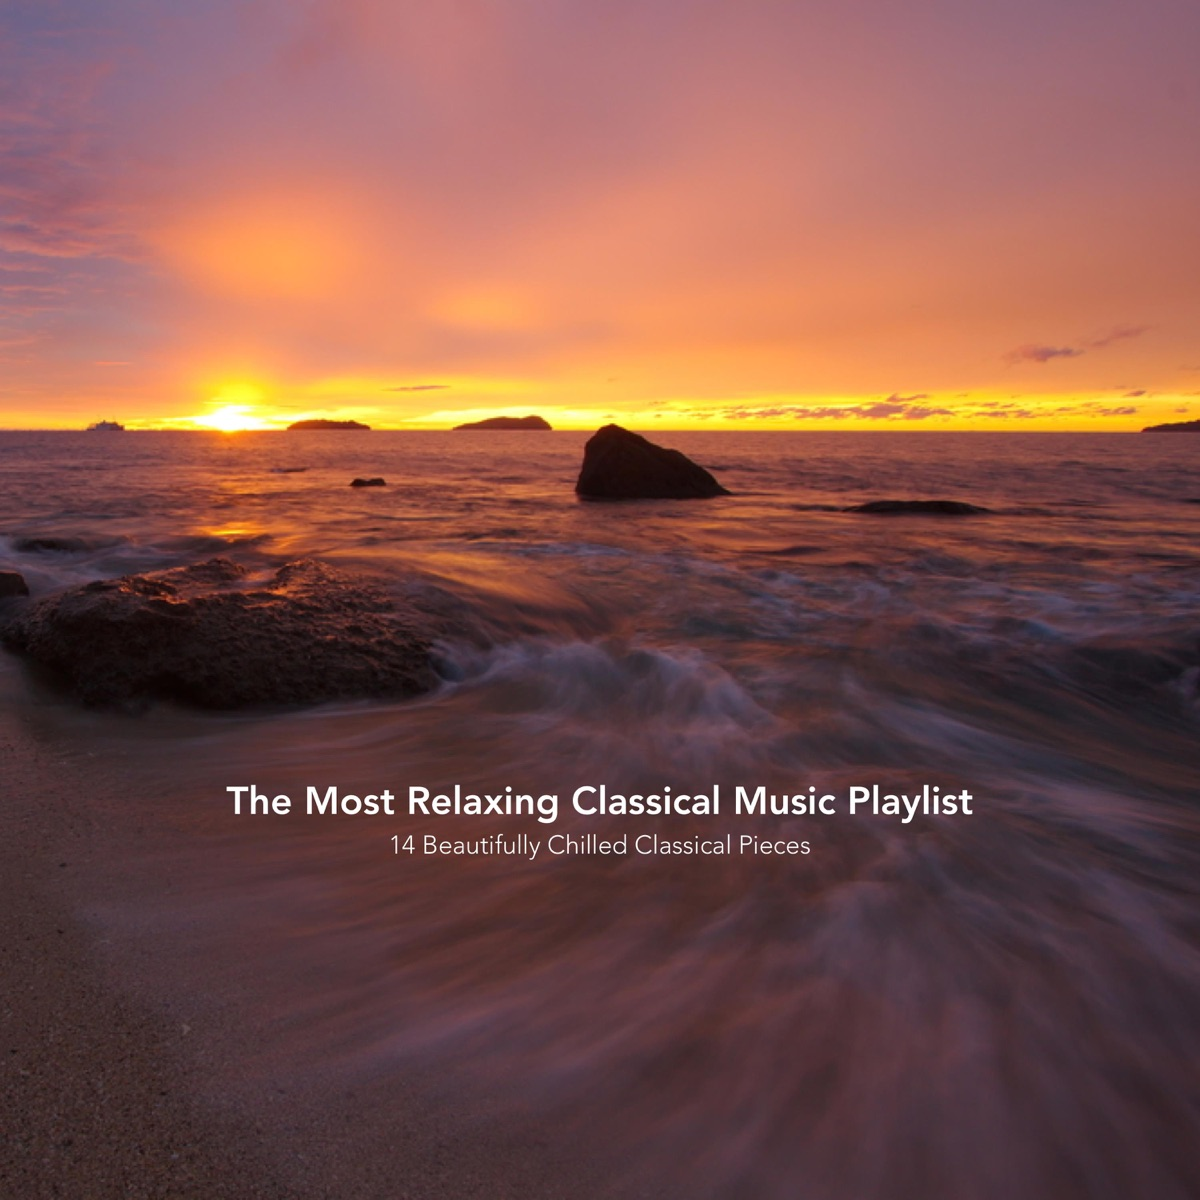 The Most Relaxing Classical Music Playlist: 14 Beautifully Chilled